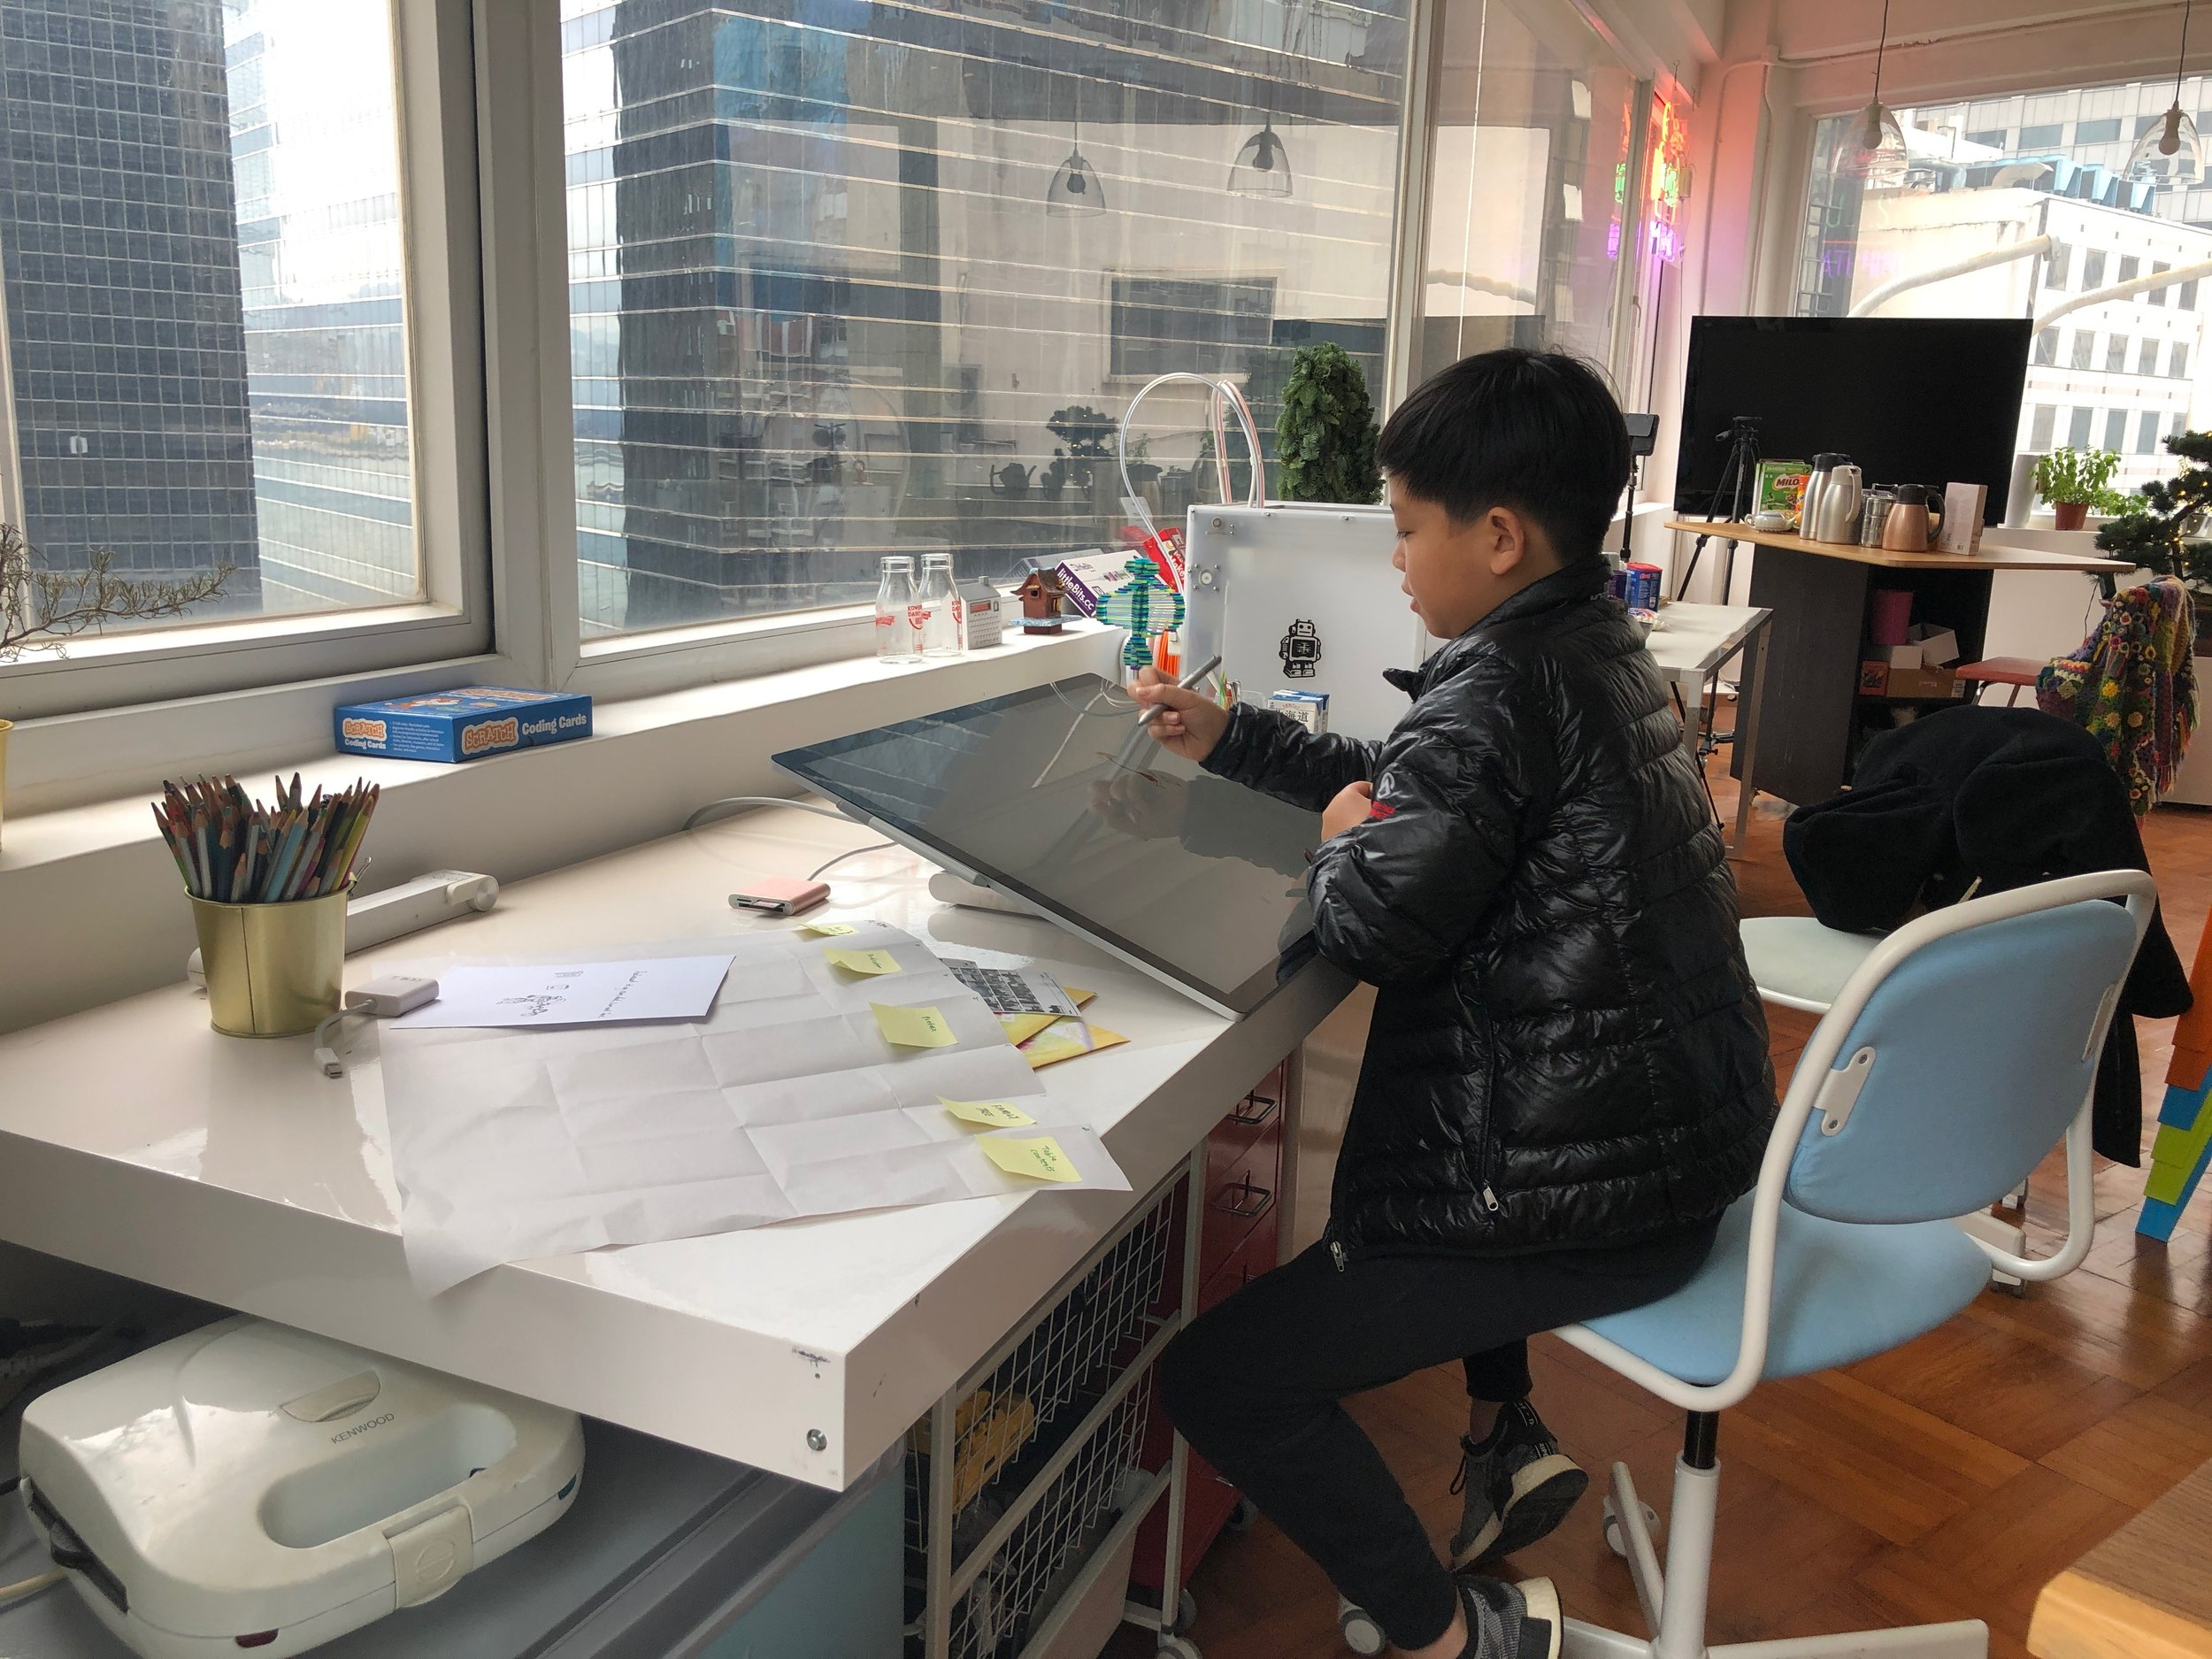 Go to Lifelong Labs, it is an awesome thing and you will like it - -11 year-old Aidan Yu, Dream Maker and Aspiring Ornithologist.